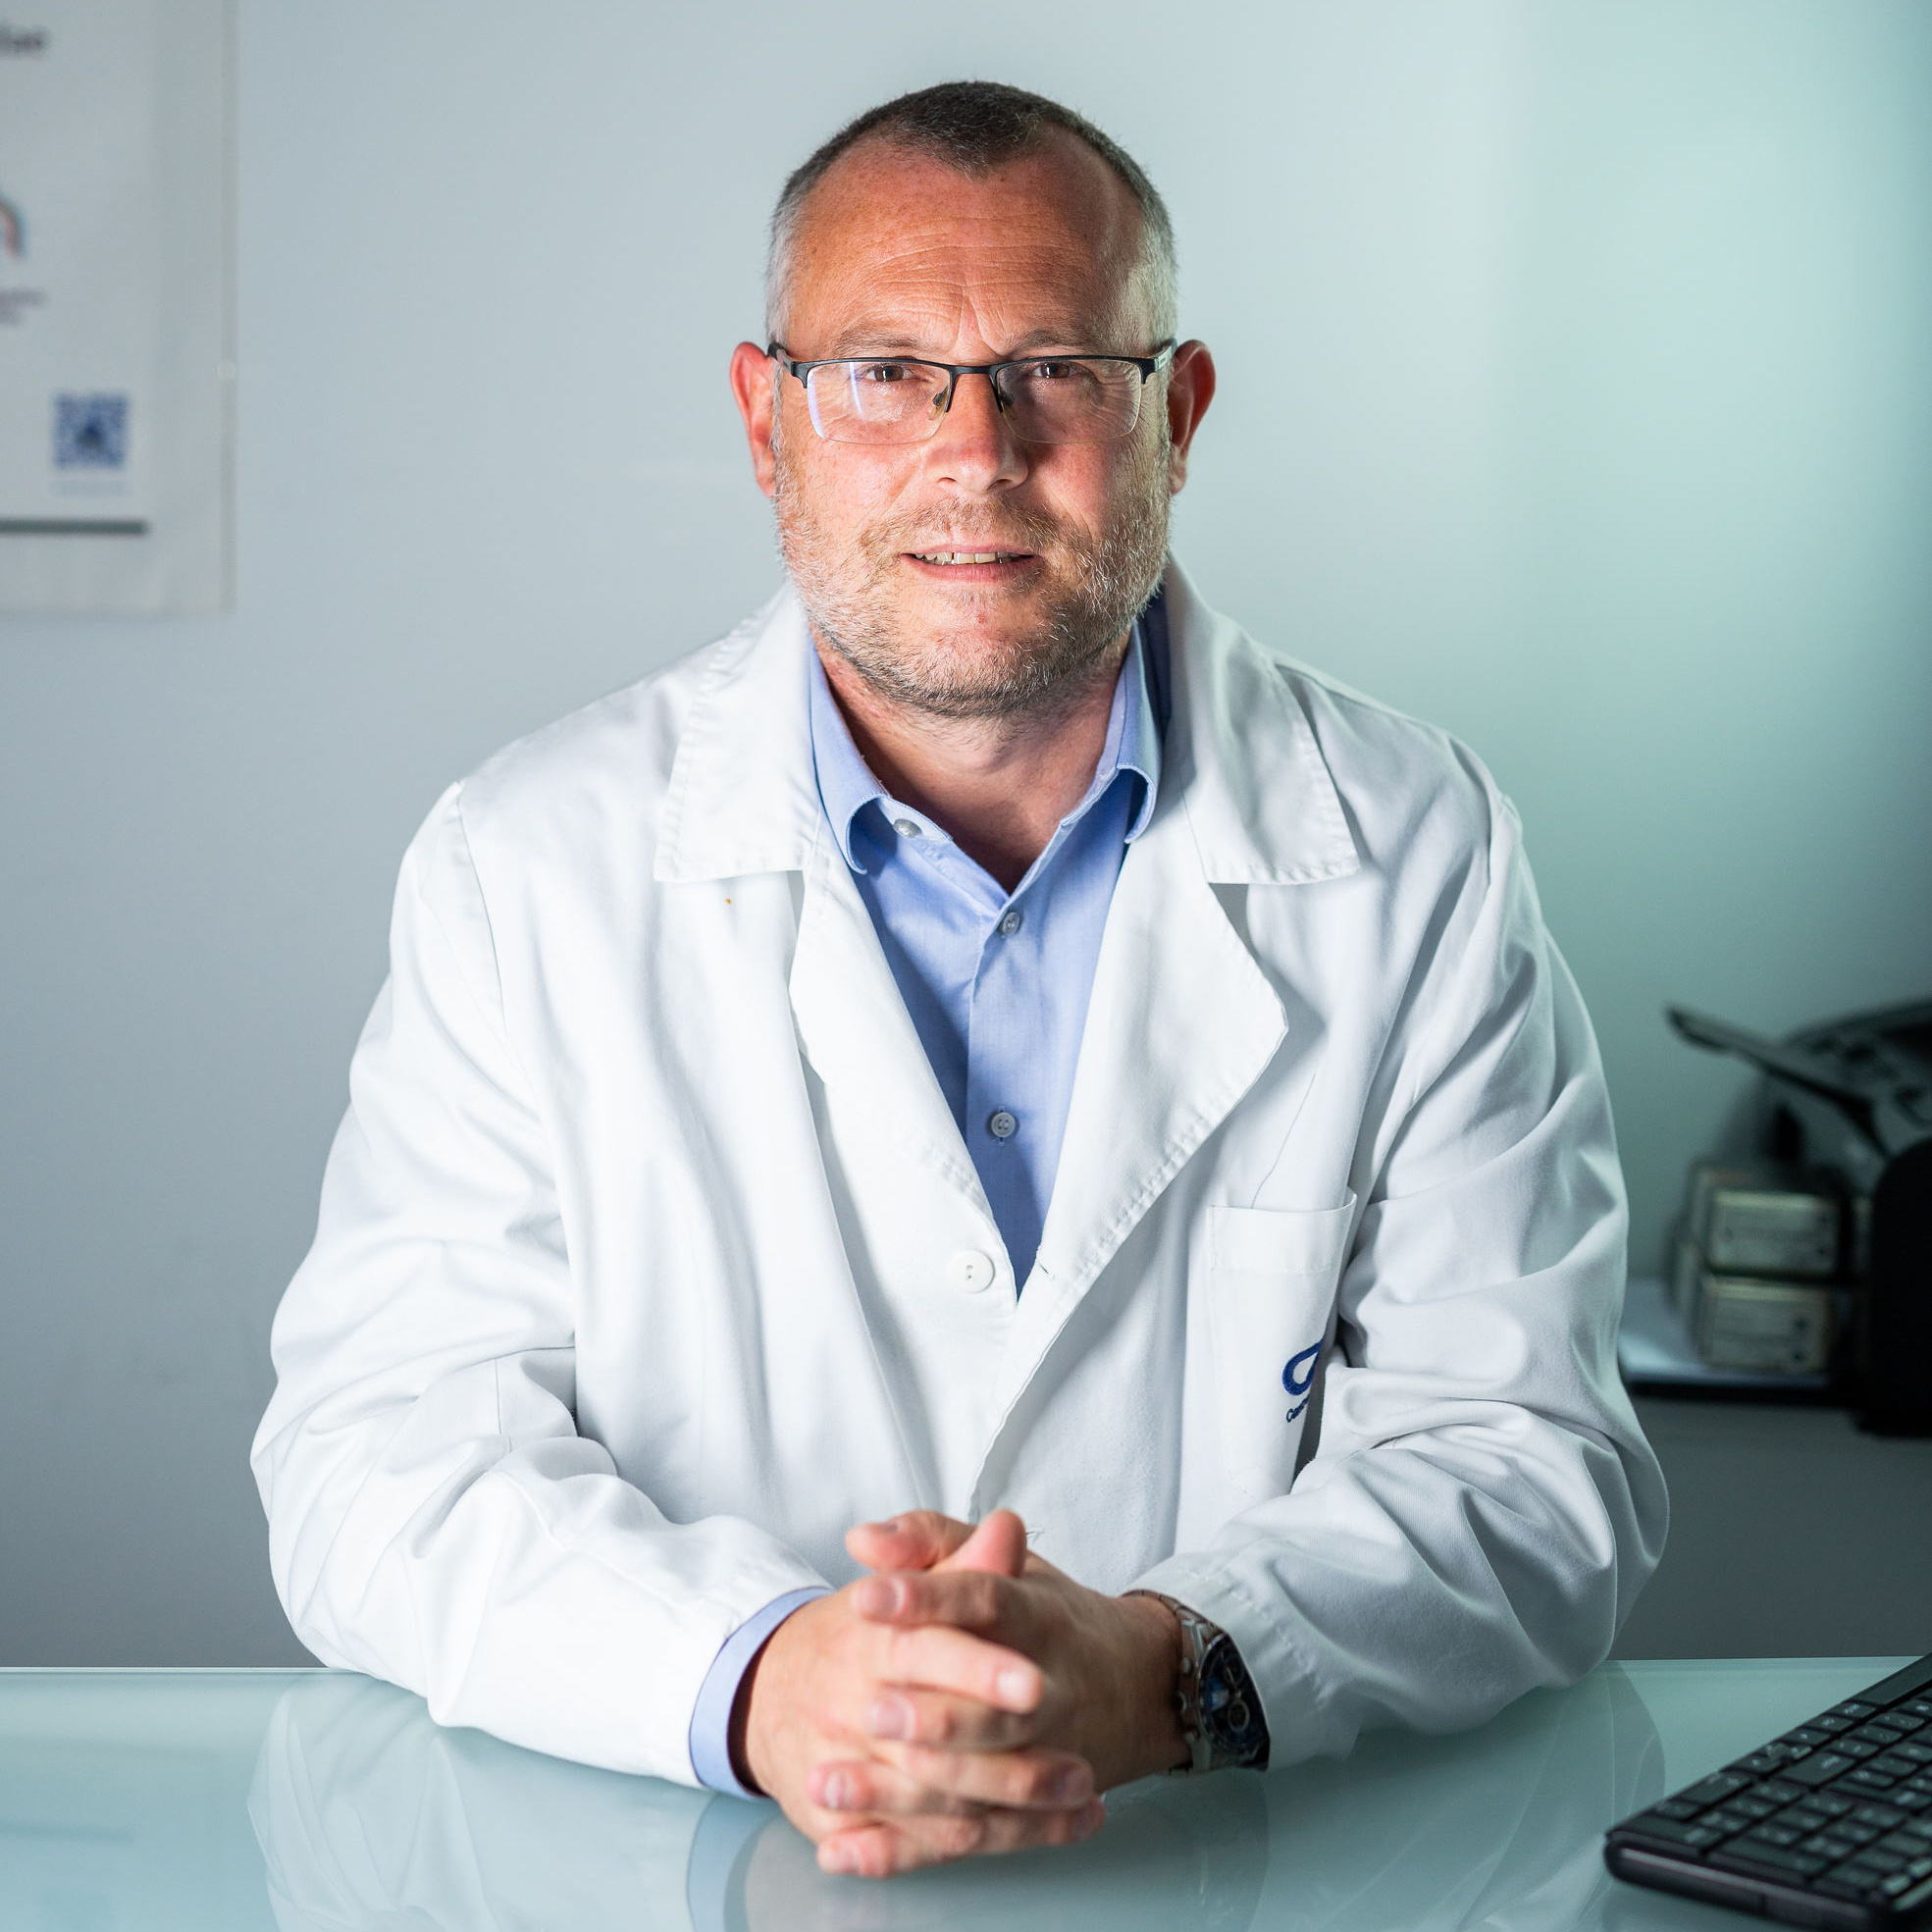 Dr. Skufca